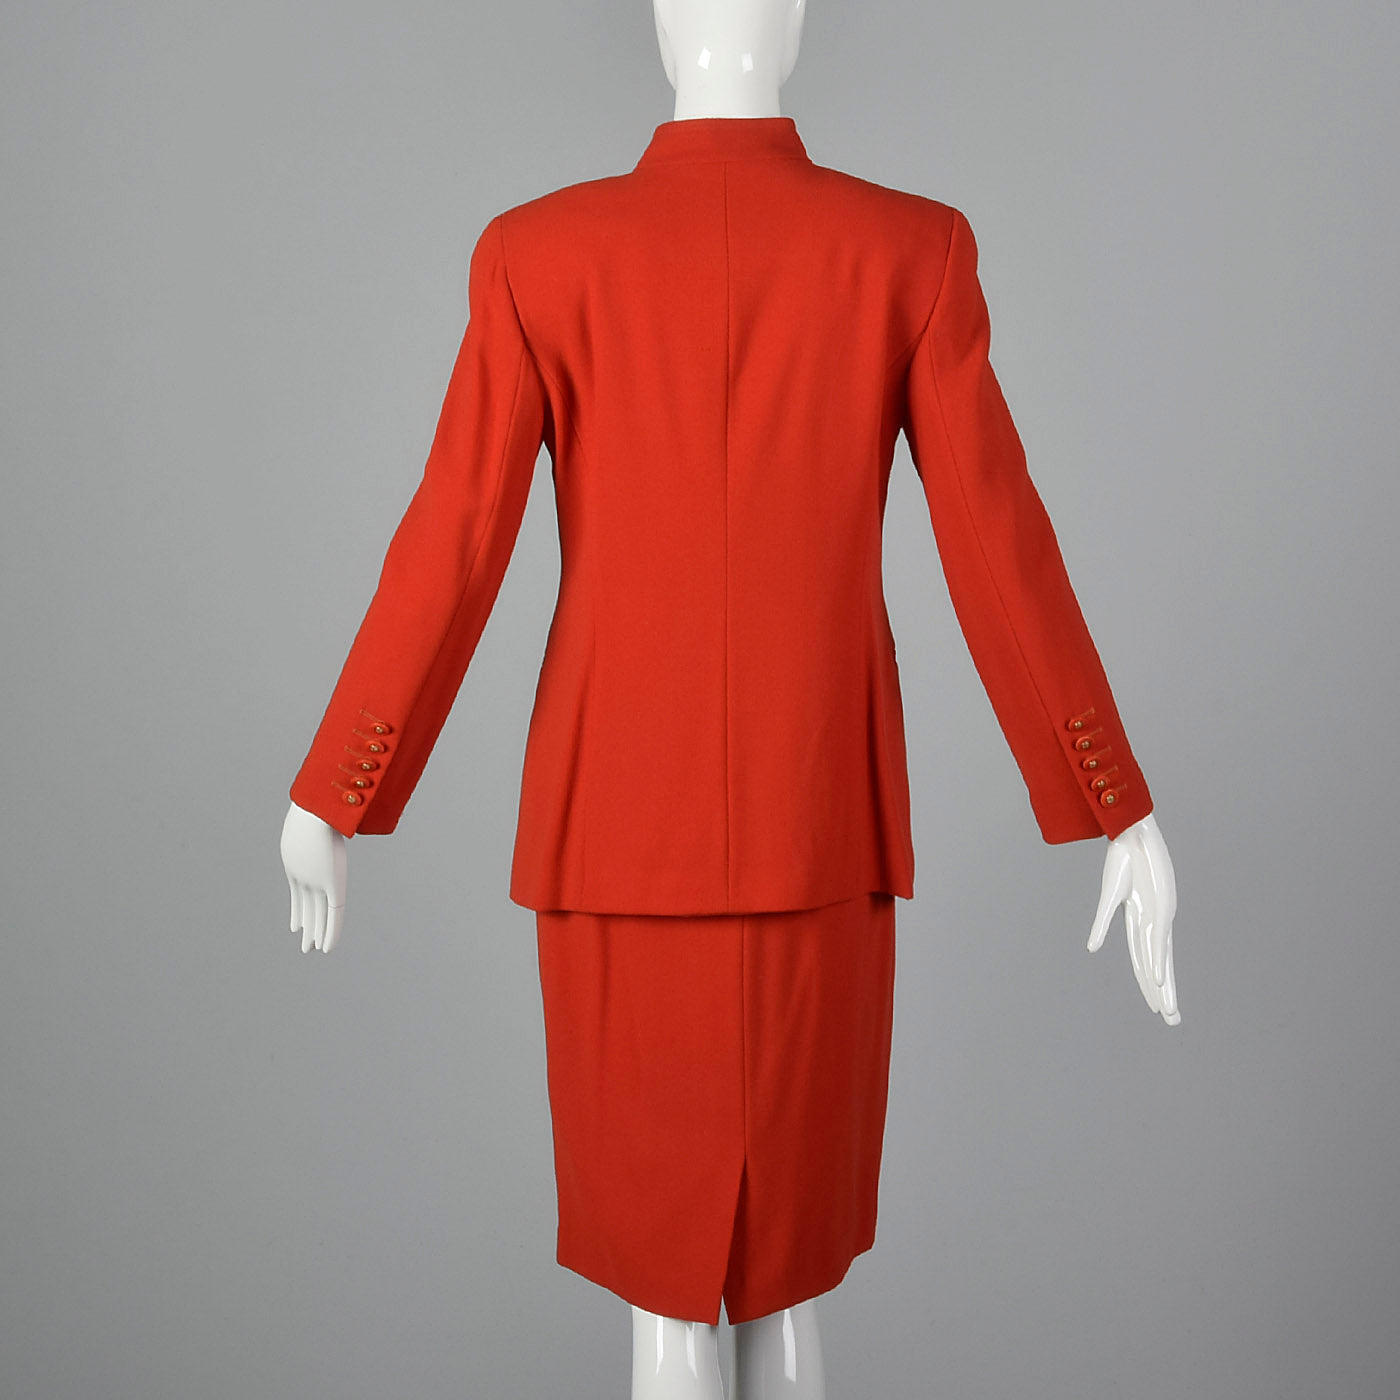 1980s Louis Feraud Red Skirt Suit in Wool Crepe